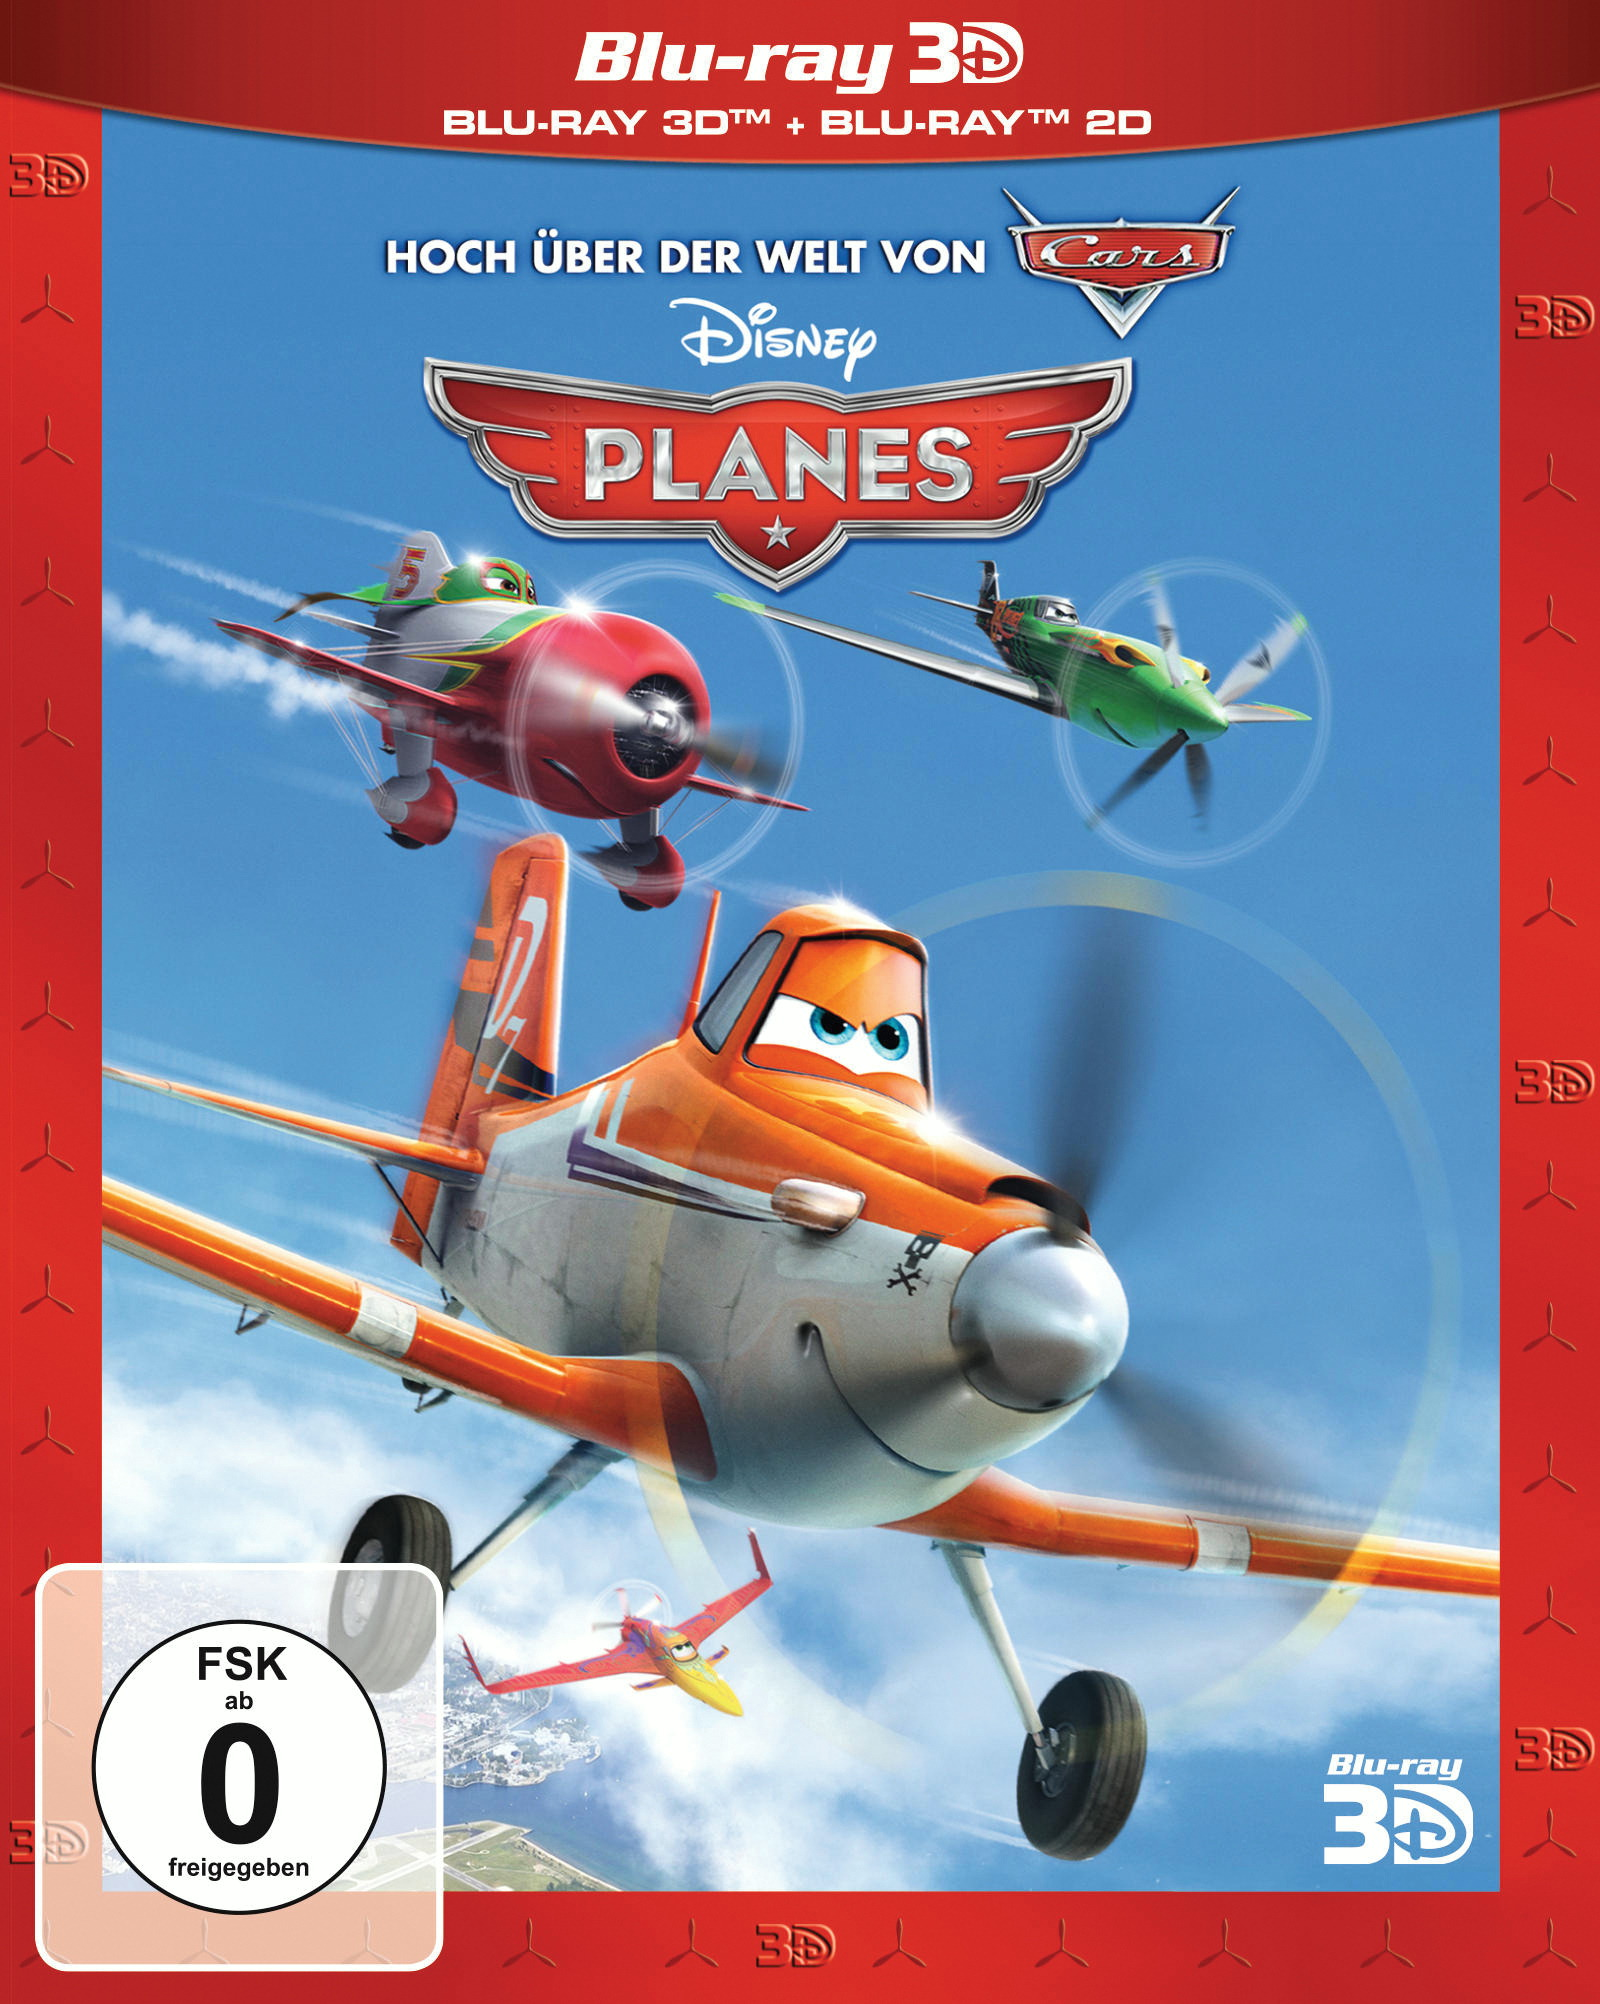 Planes (Blu-ray 3D) Poster